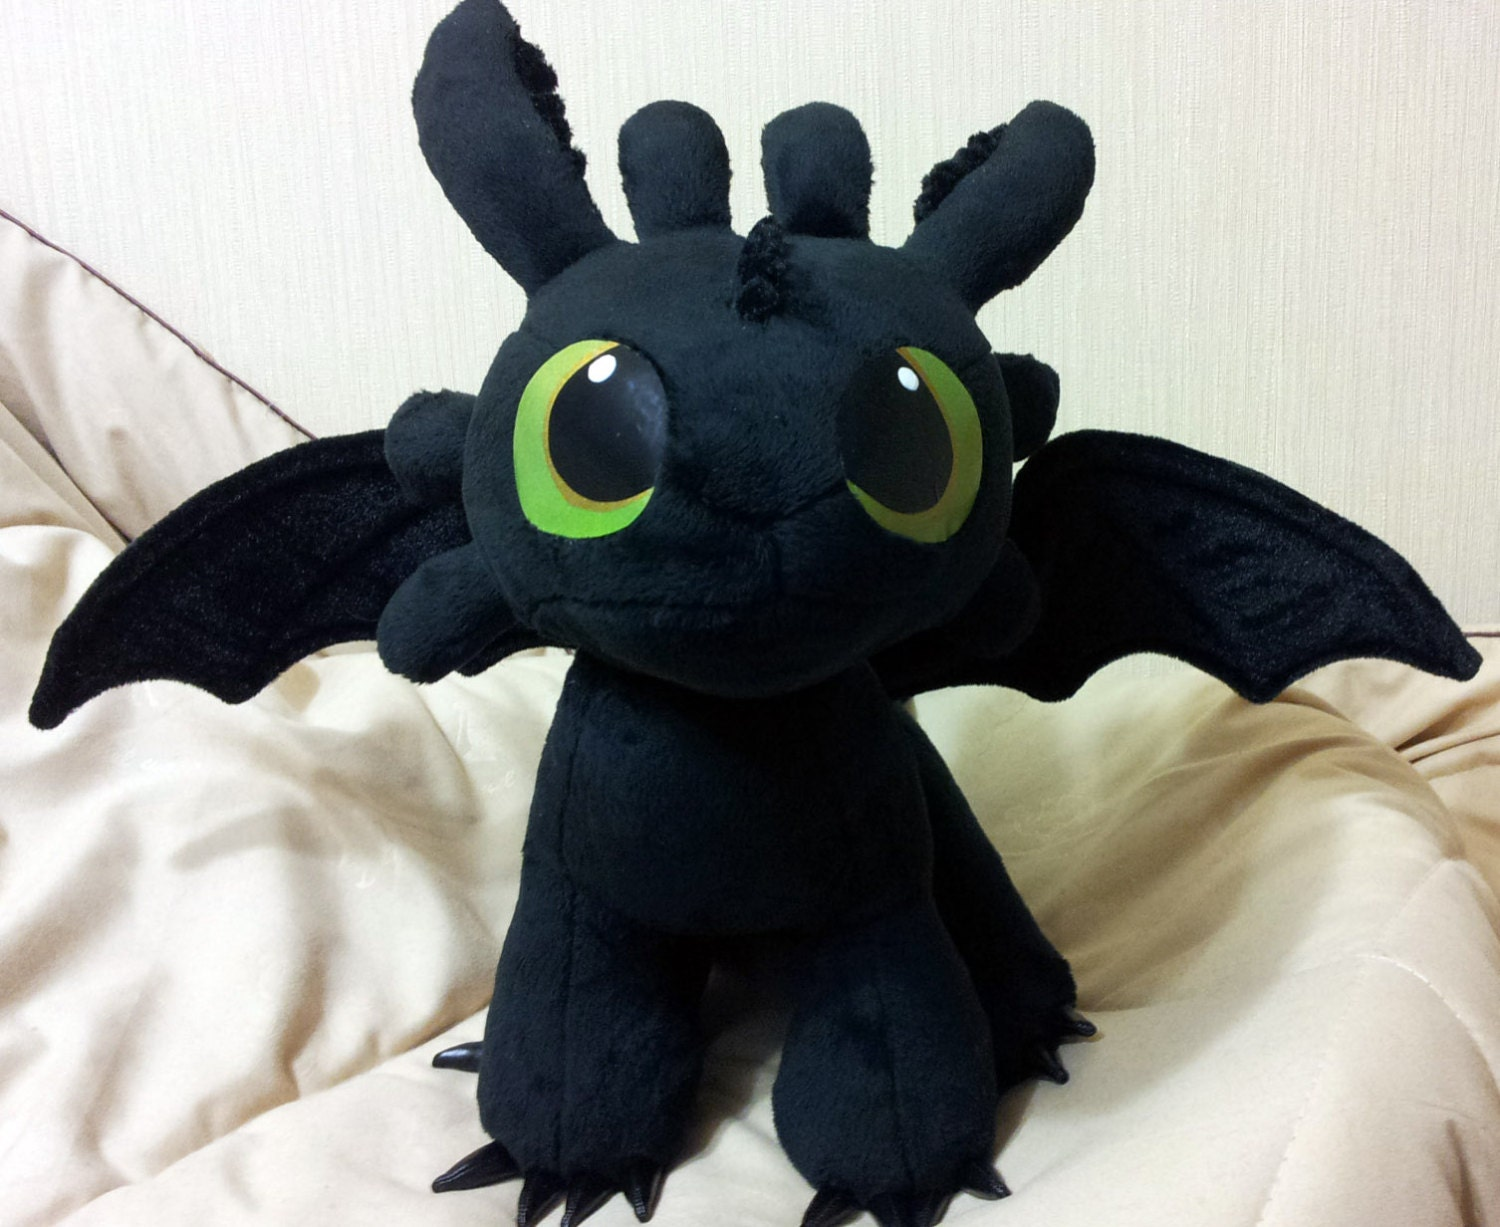 How To Train Your Dragon Inspired Sitting Toothless The Night Etsy